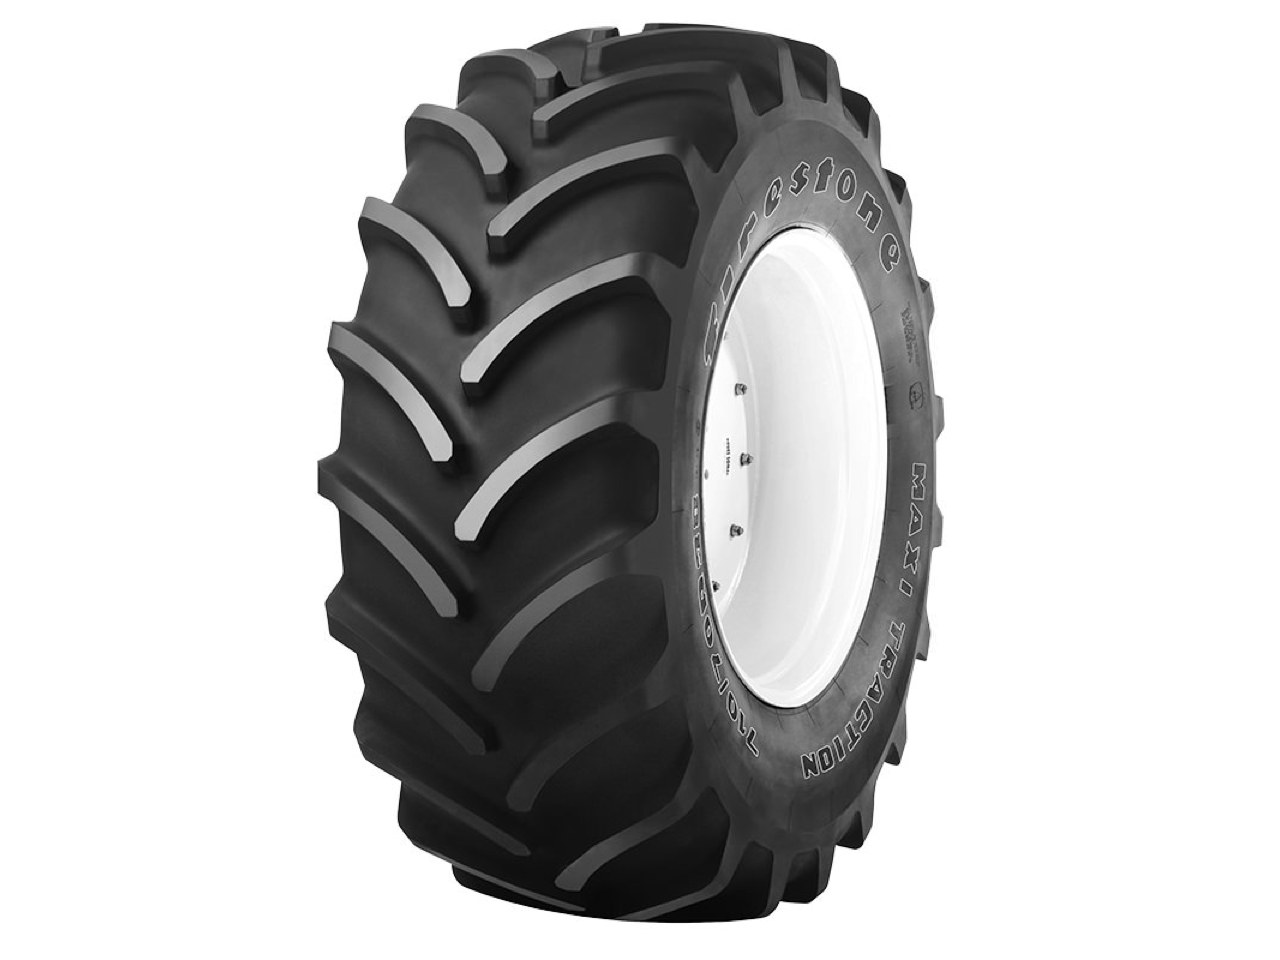 Firestone Maxi Traction Maxi Traction 710/70R42 173D